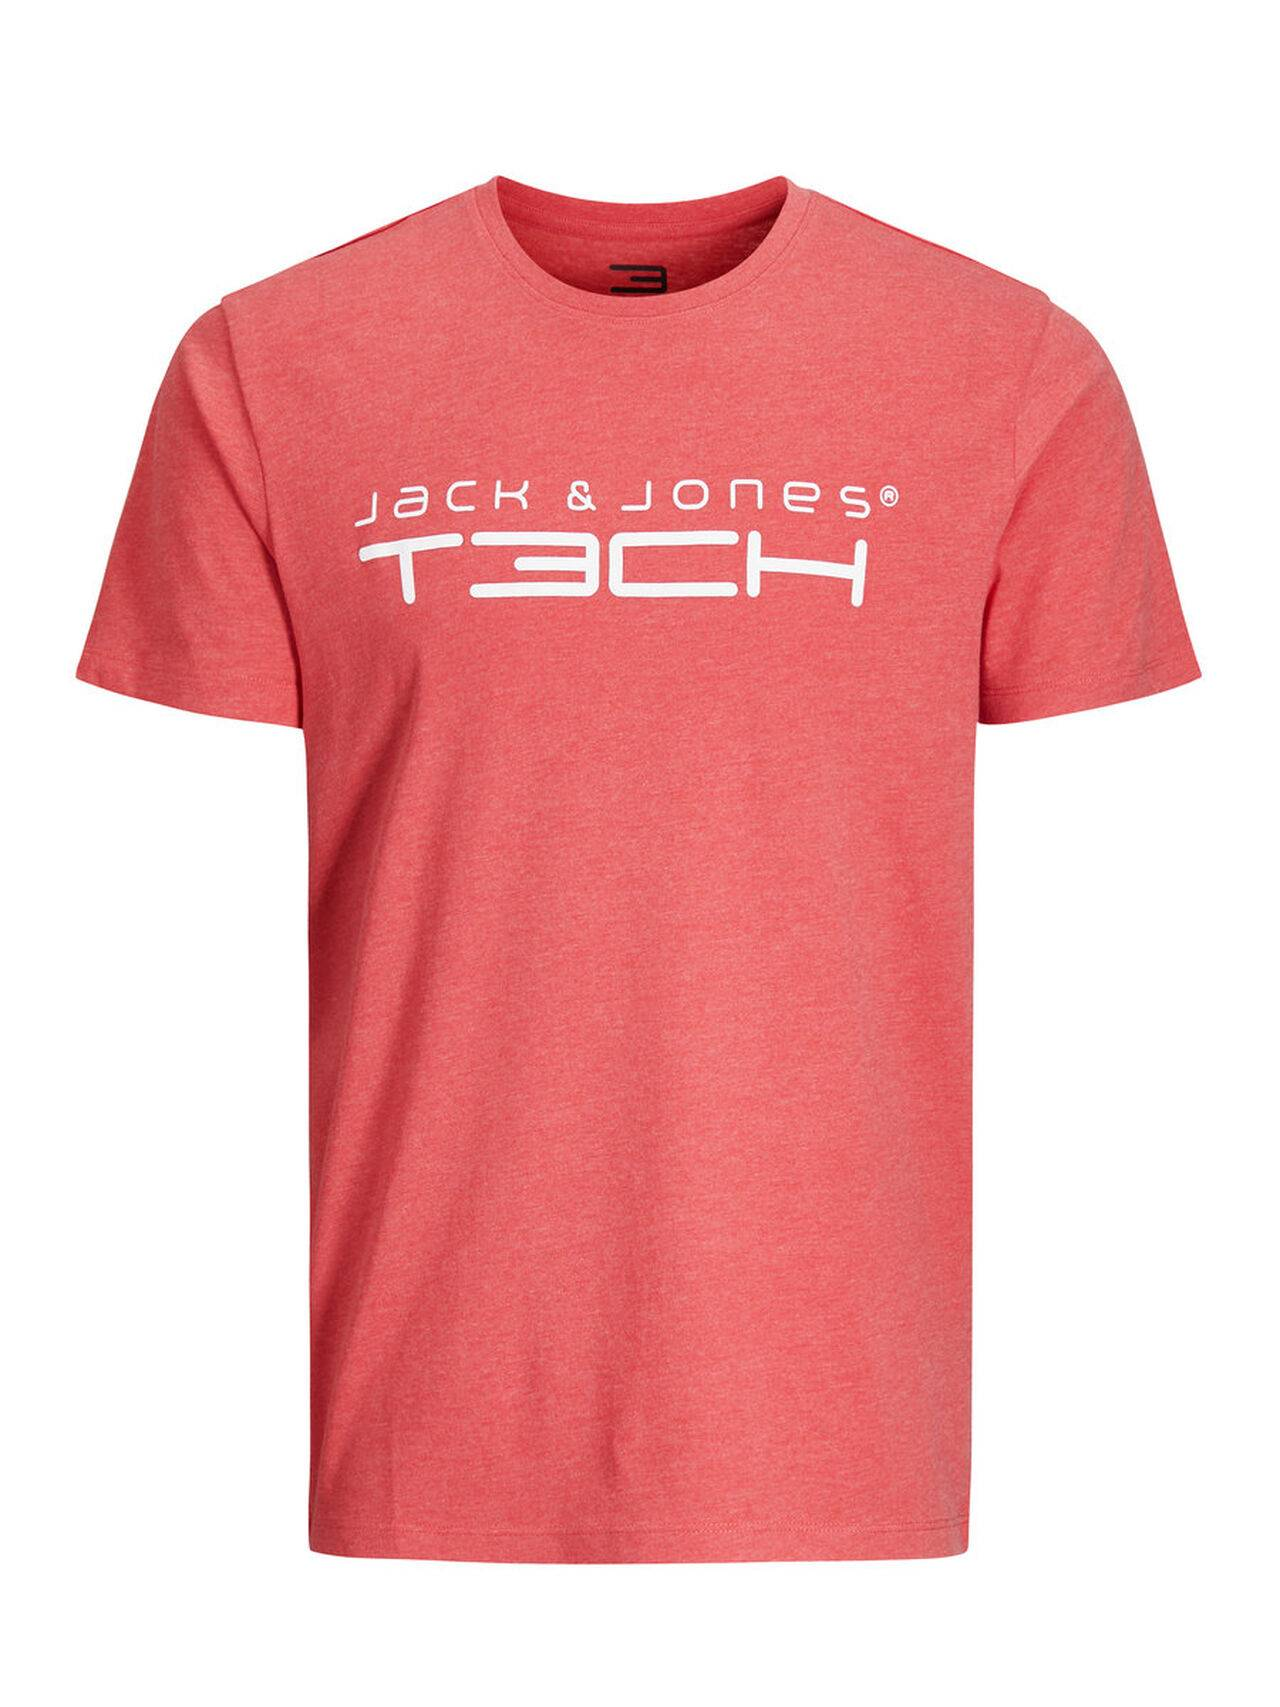 JACK & JONES Printed Sports T-shirt Men Red Poinsettia